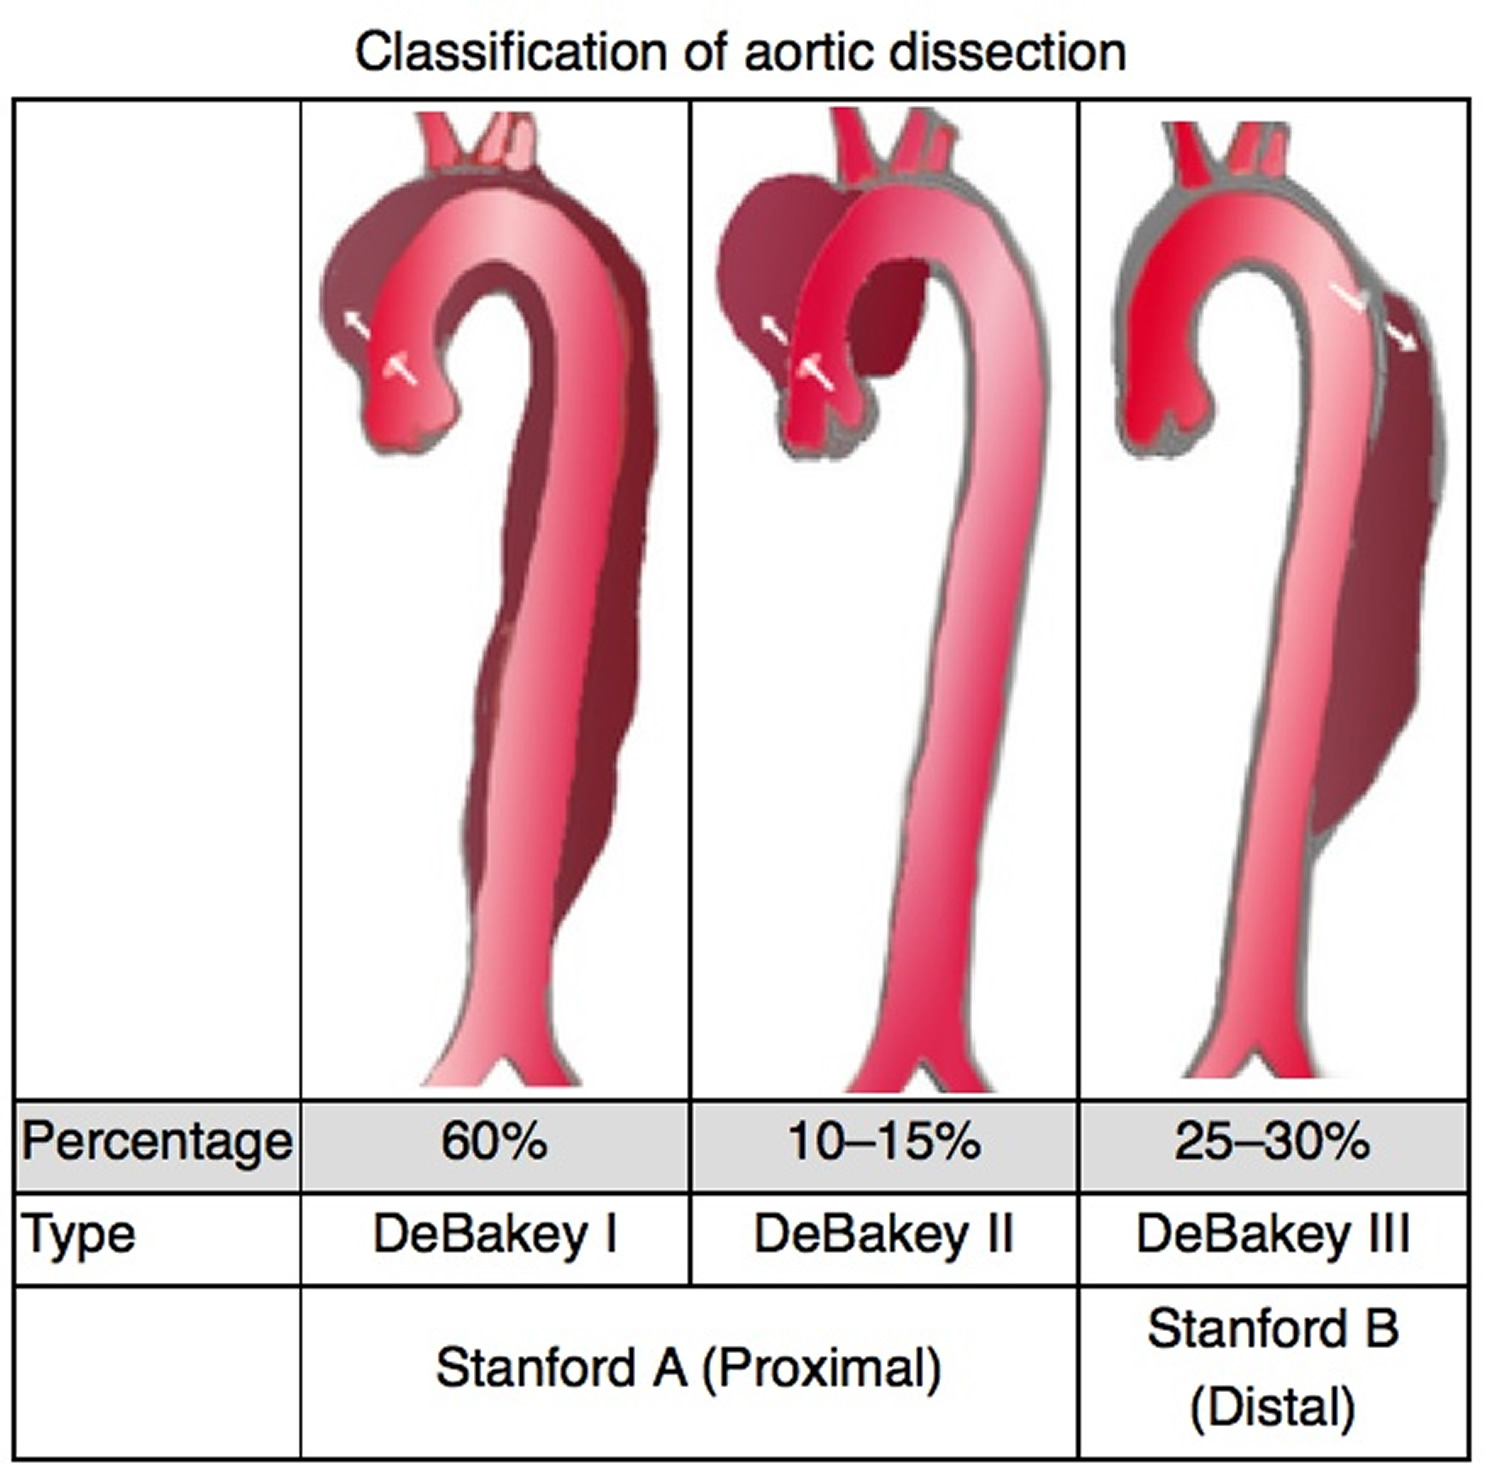 Aortic dissection type